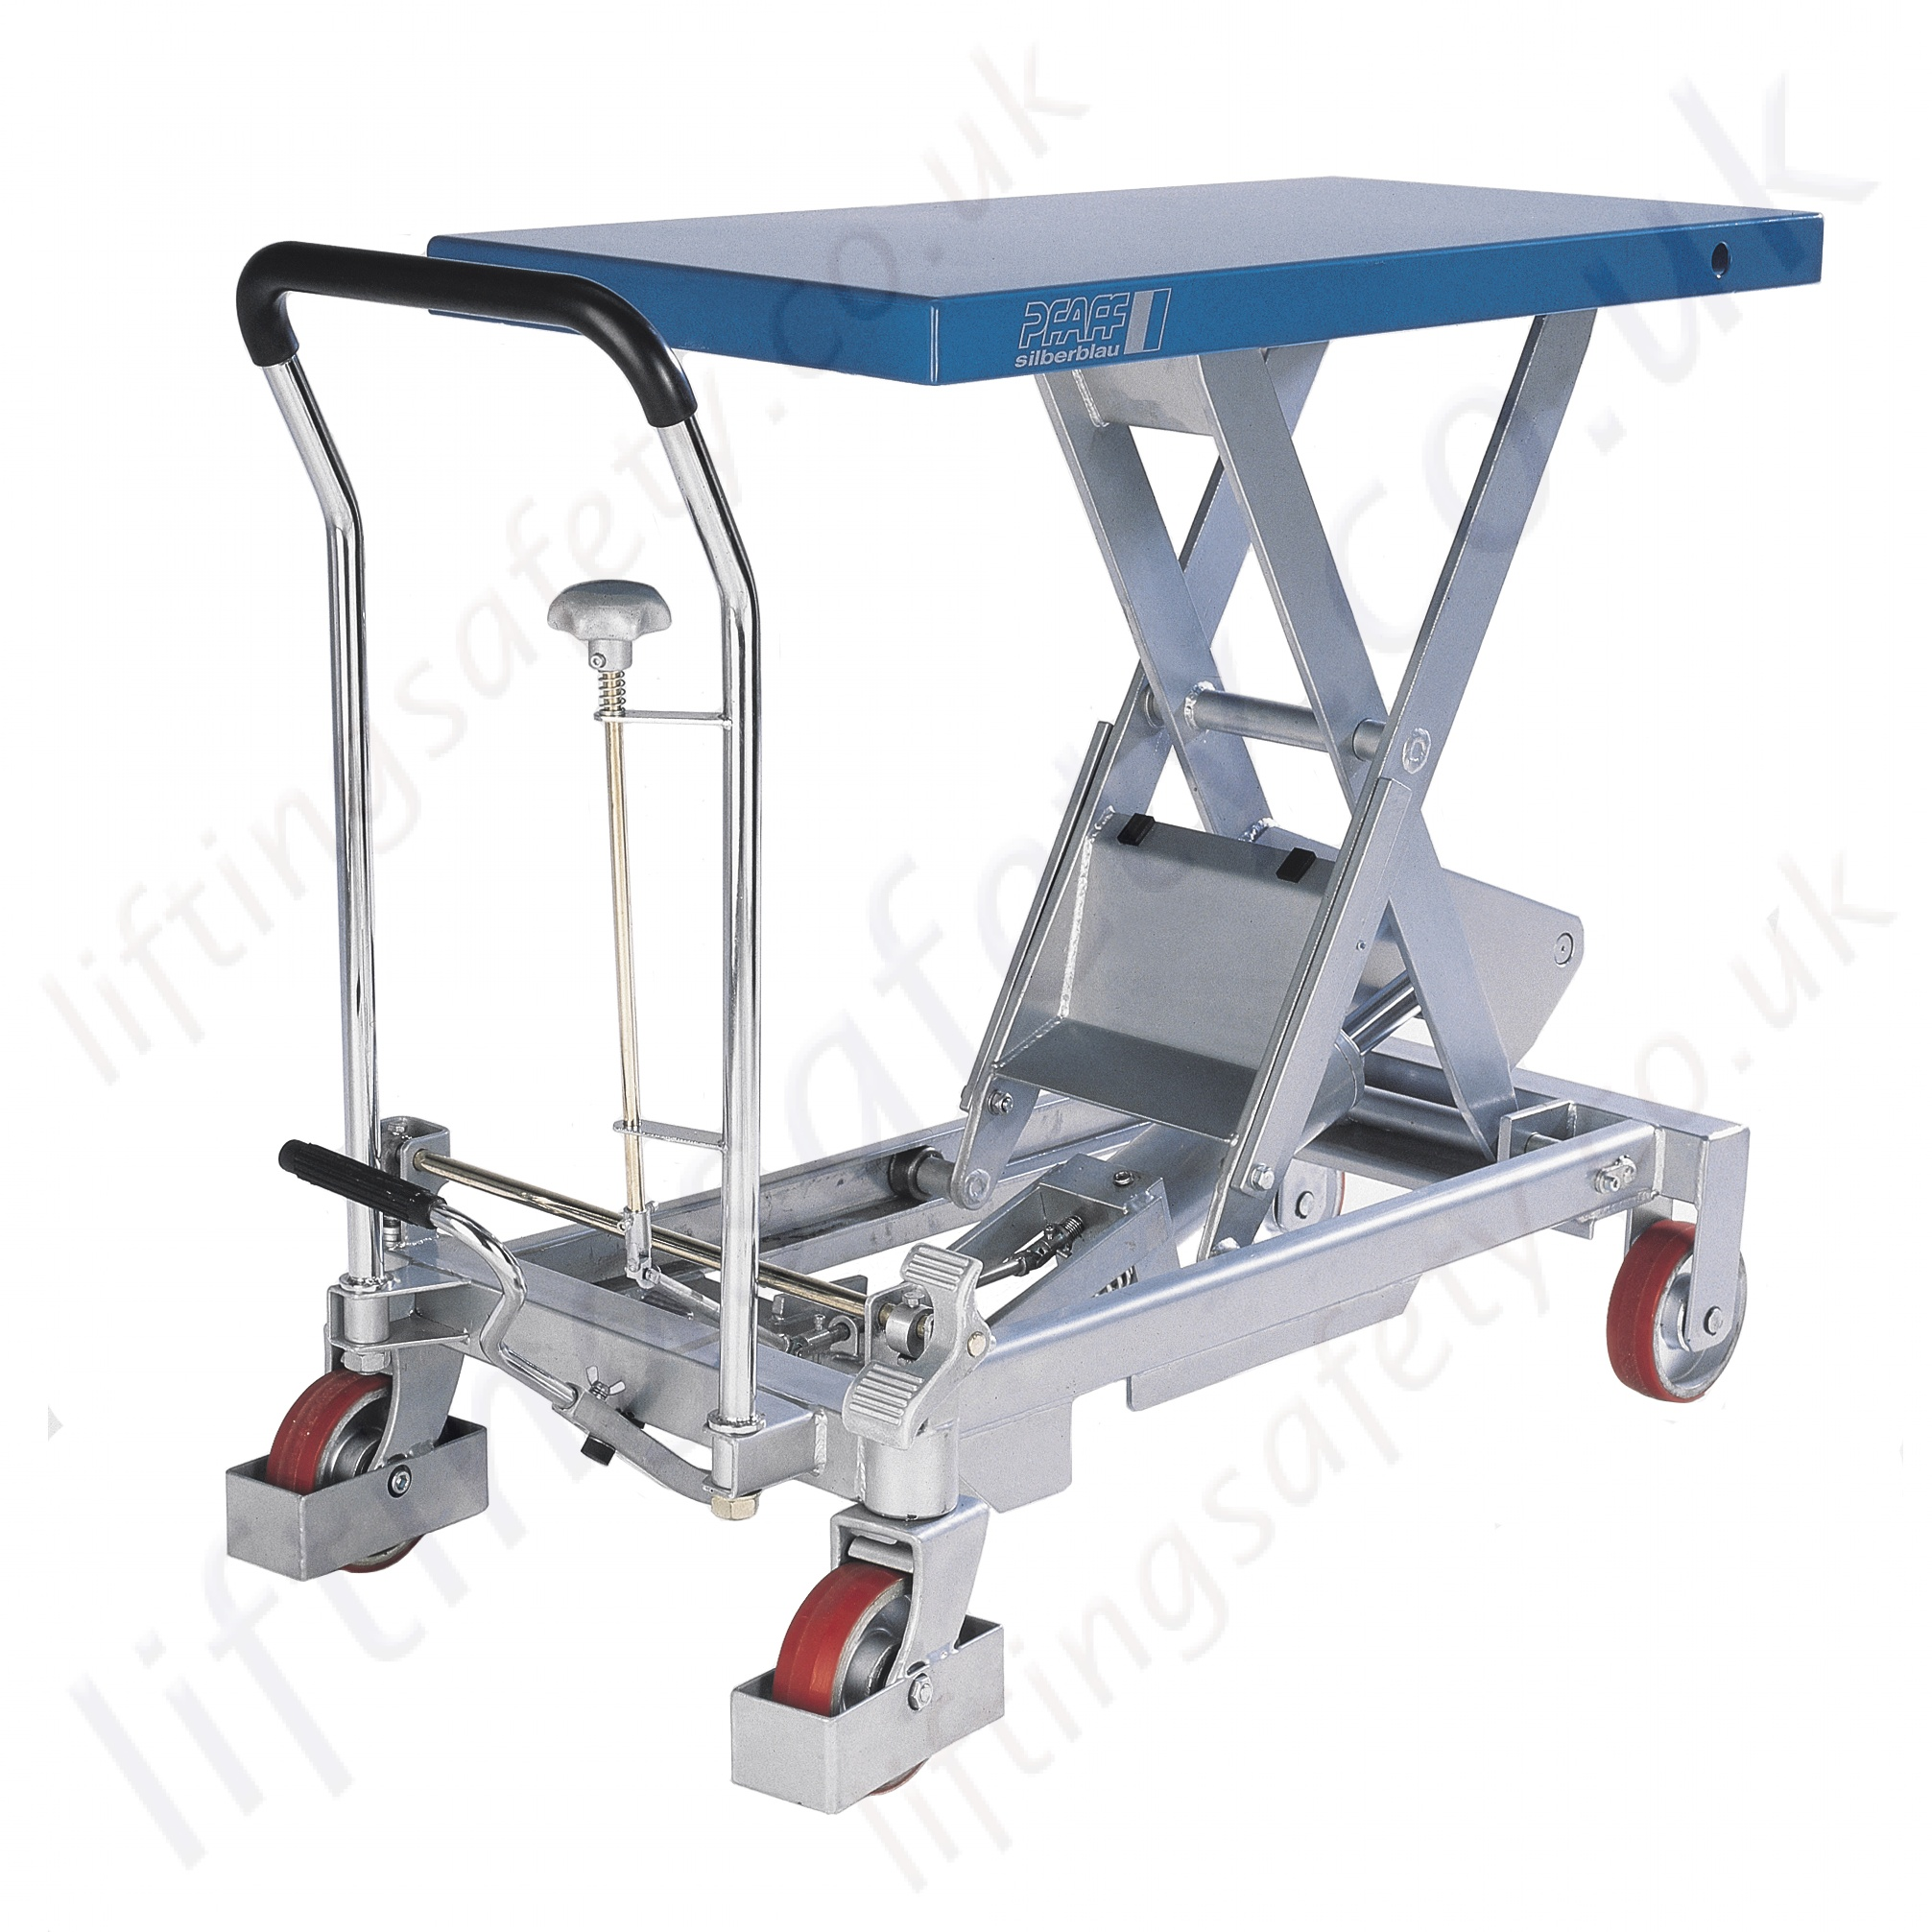 mobile home hire with Pfaff Scissors Lift Trolleys 3187 on Uncategorised together with Design Fabrication moreover Trench Sand further Ladygodiva also Candy Carts.